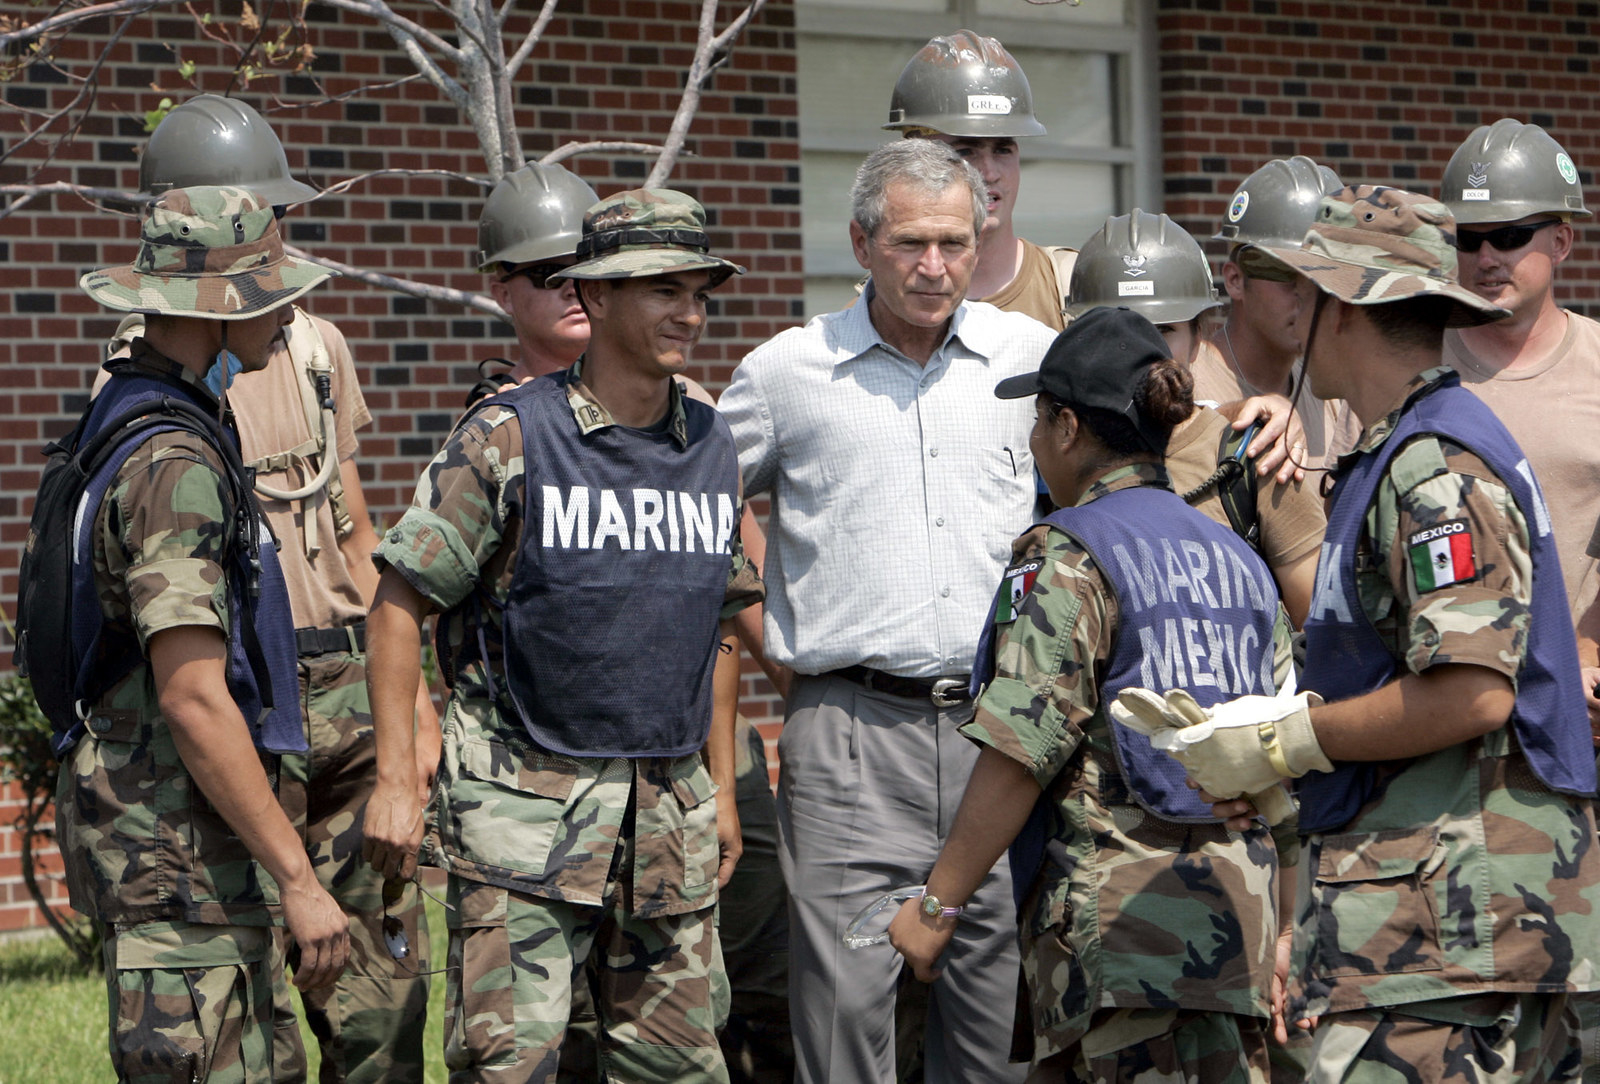 President George W. Bush talks with Mexican marines helping to clear debris in Gulfport, Mississippi, in 2005.